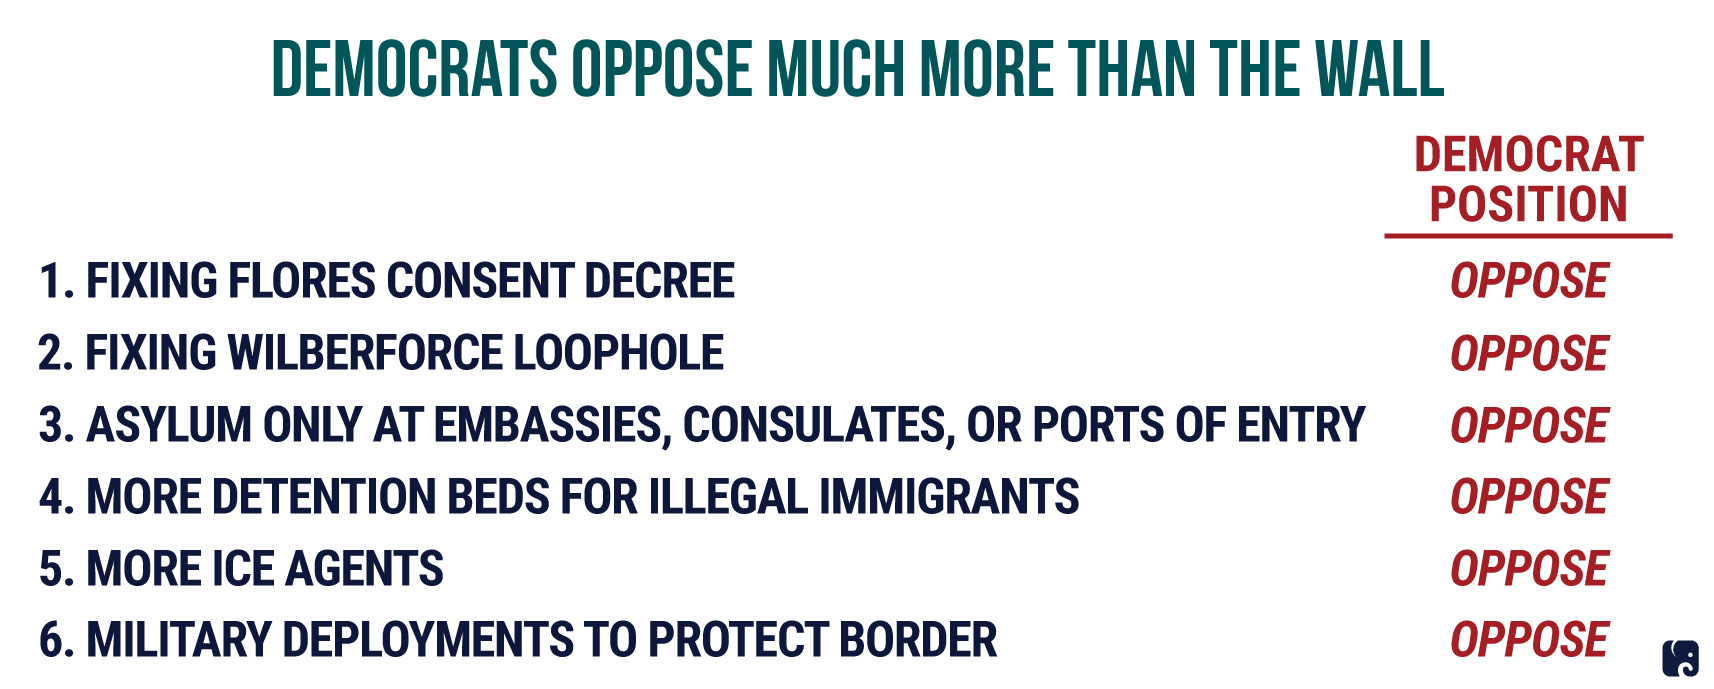 dEMS OPPOSE WALL